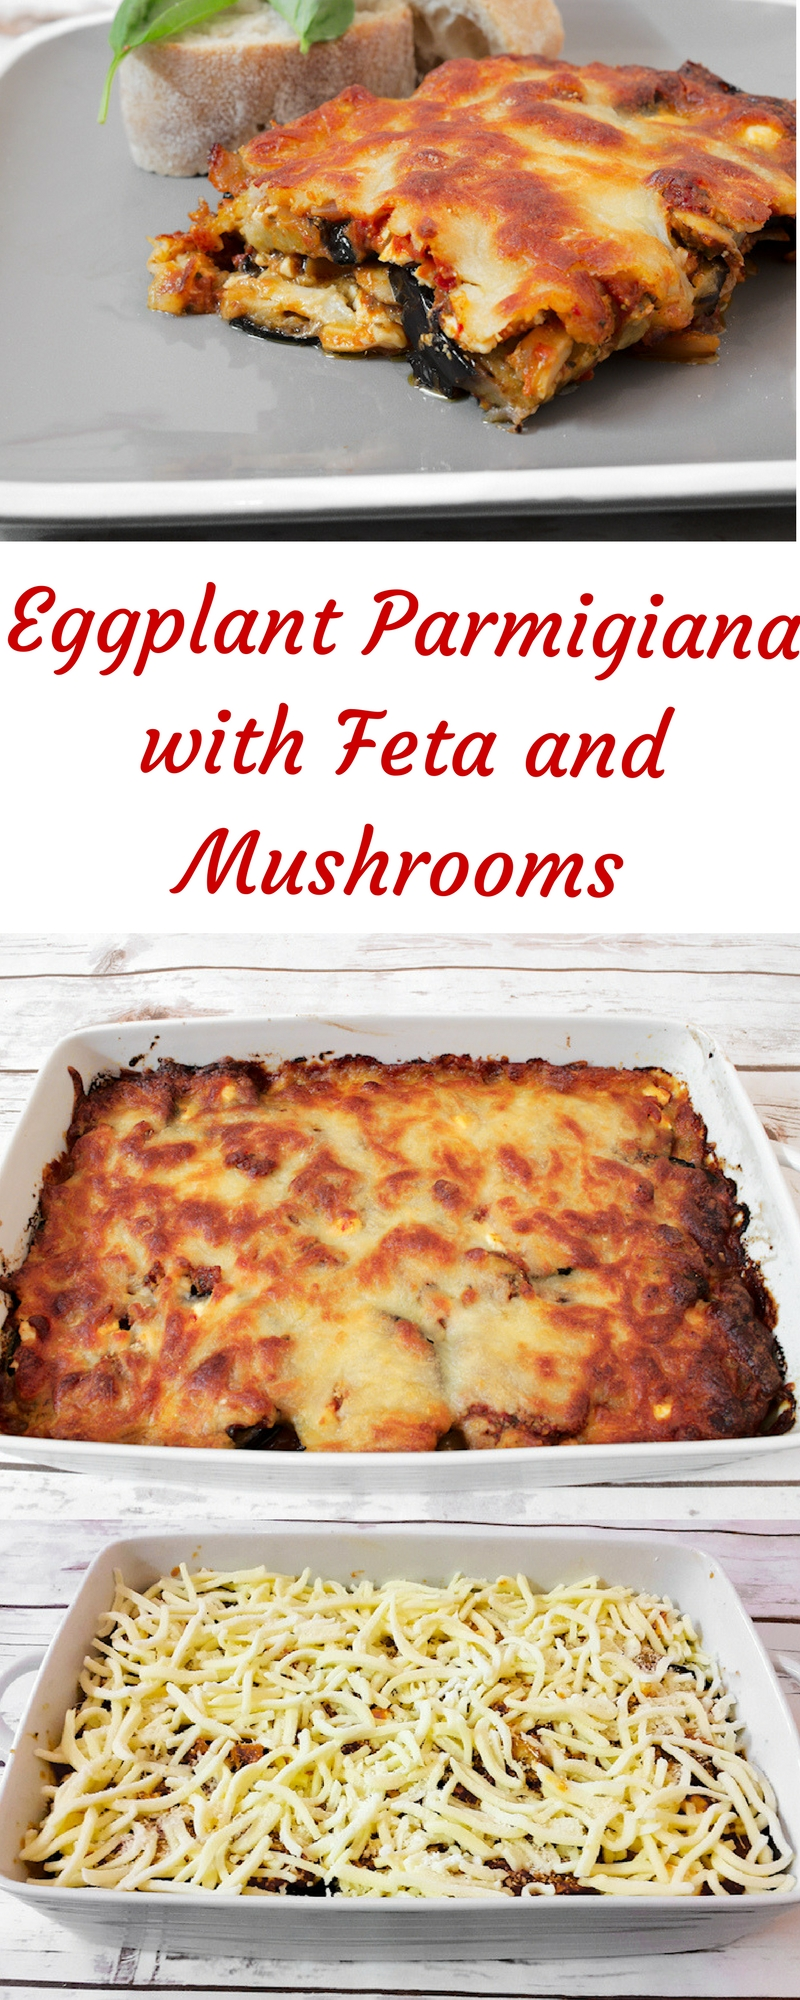 Eggplant Parmigiana with Feta and Mushrooms